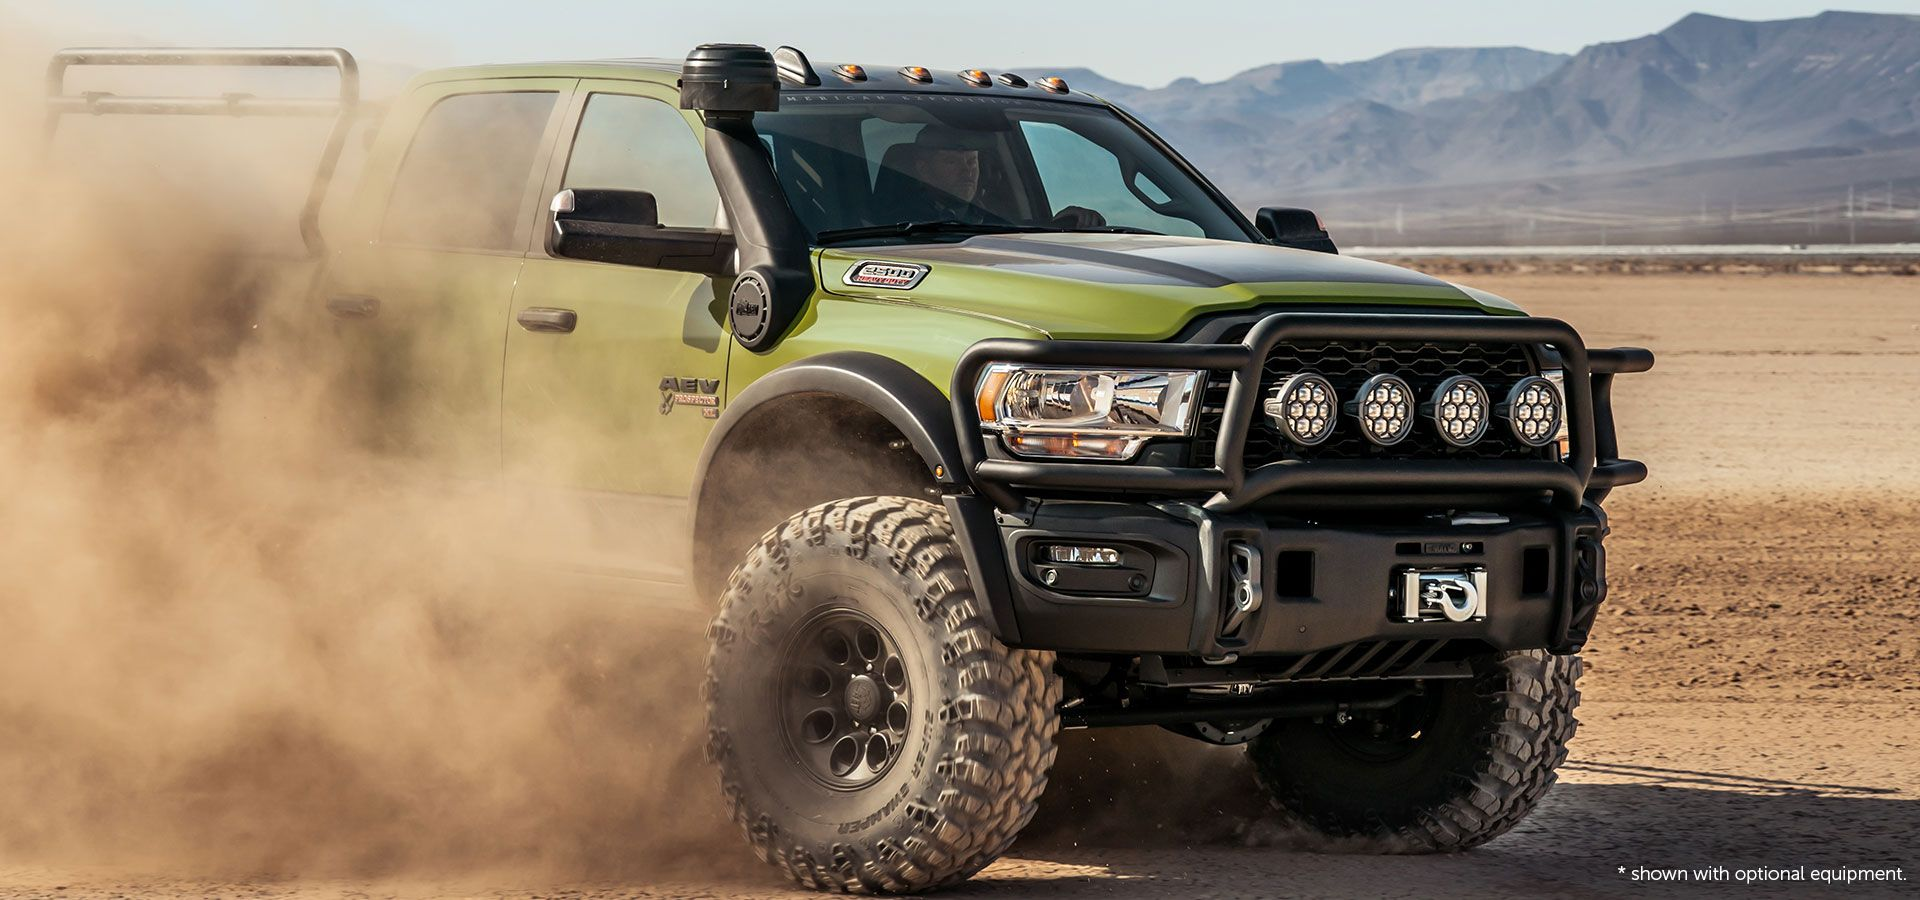 Prospector XL American Expedition Vehicles AEV in 2020